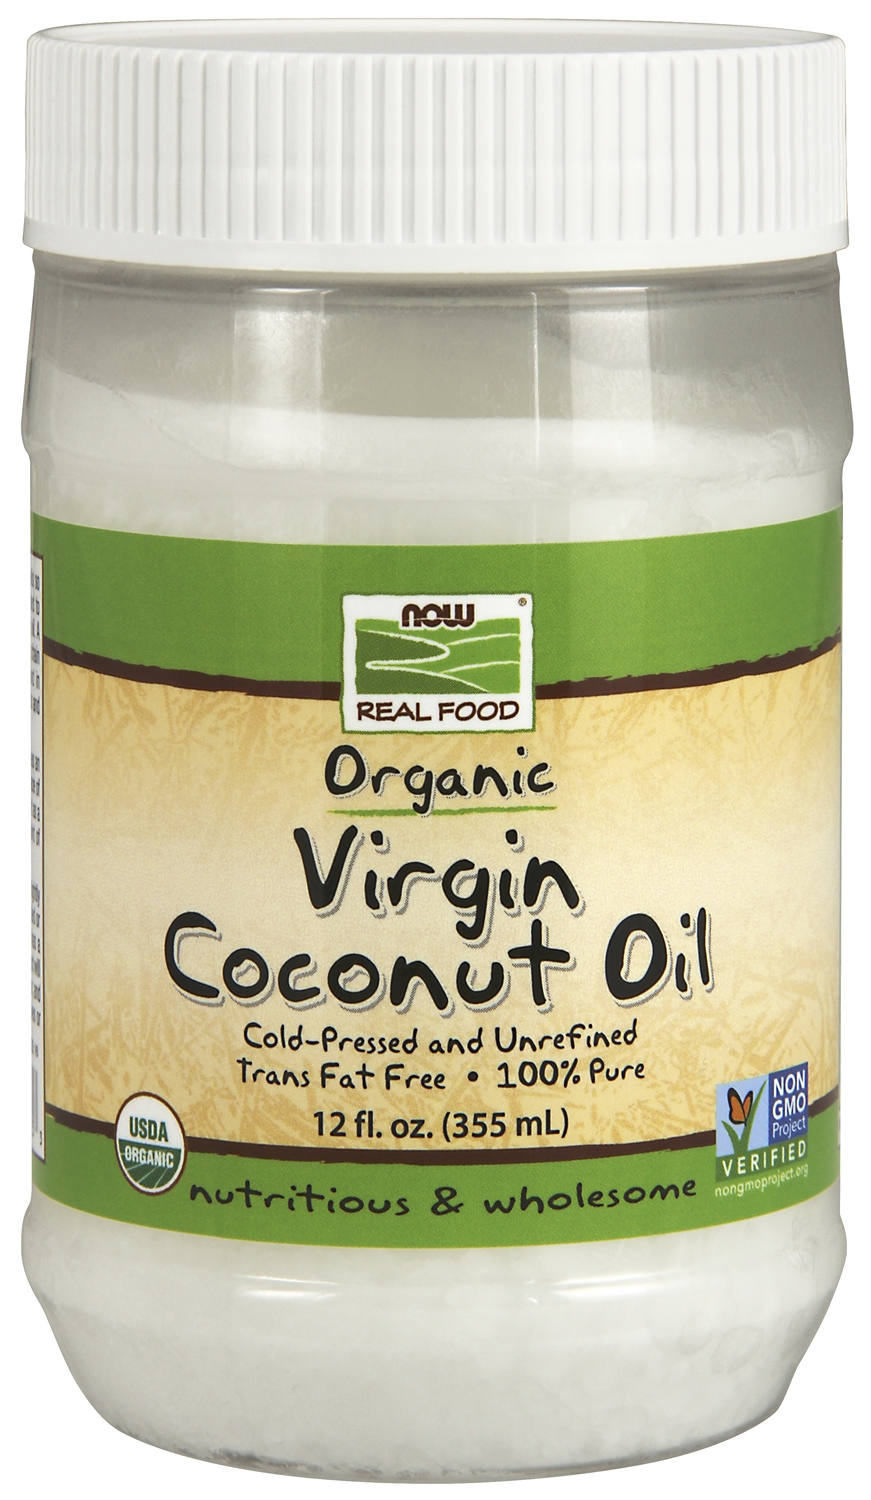 Virgin Coconut Oil Certified Organic 12 oz (355 ml) by NOW